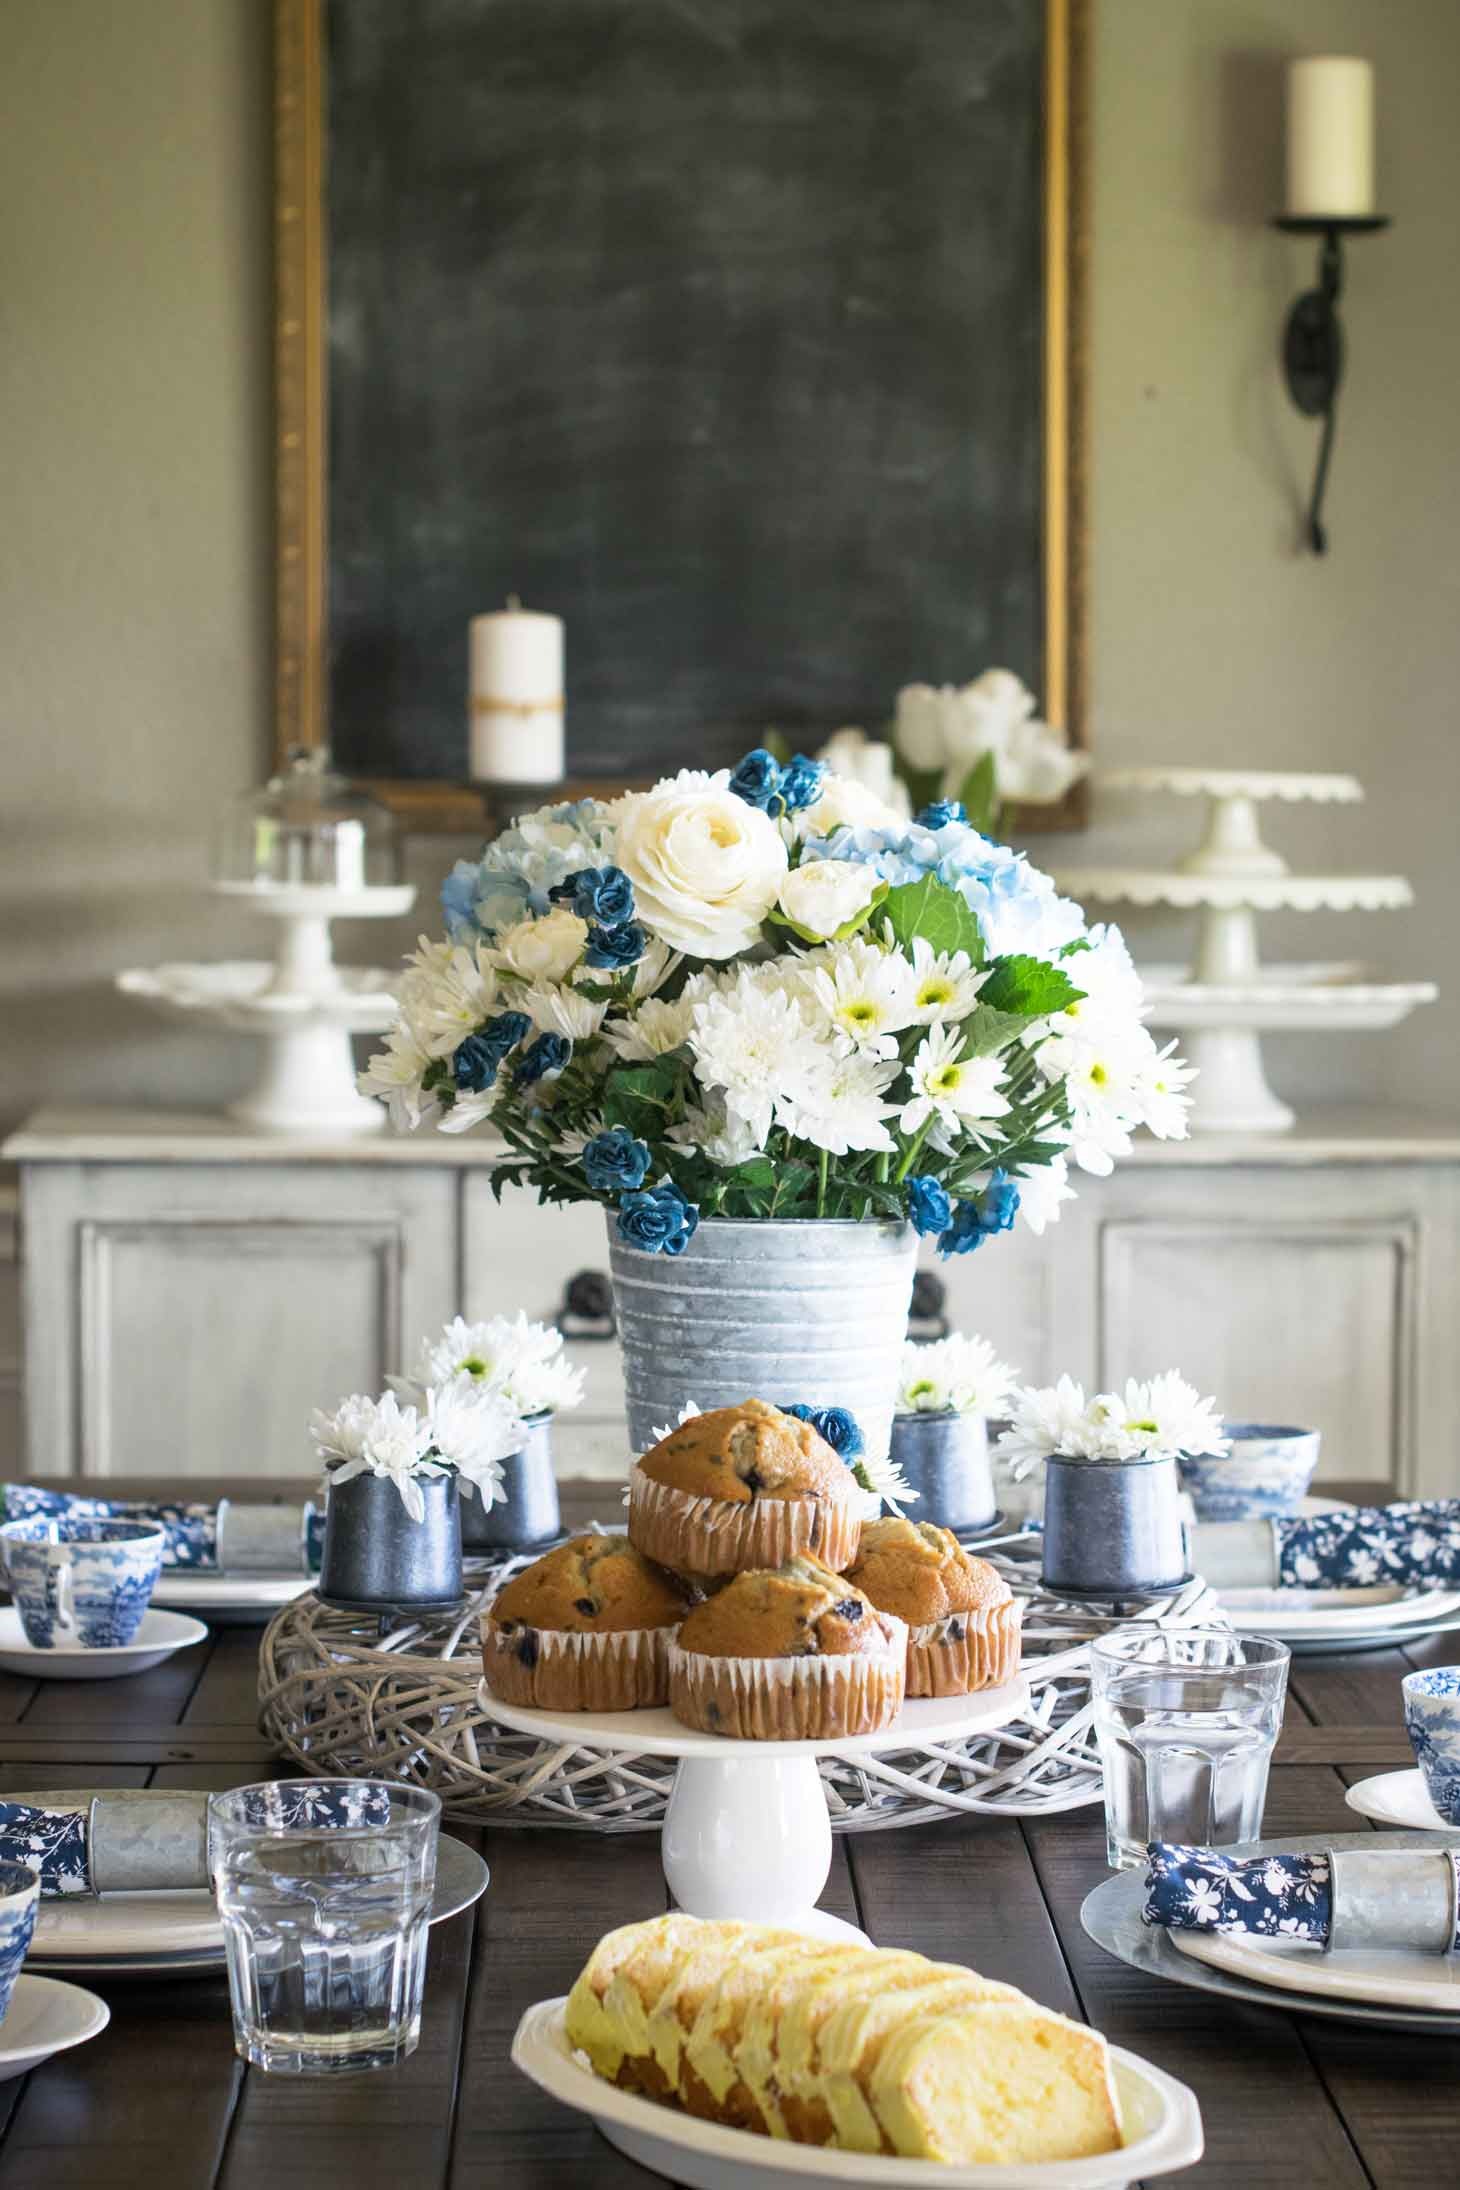 This blue and white china spring tablescape is sure to wow your guests on Easter and beyond. It utilizes antique blue and white antique ironstone as well as modern napkins and a fresh floral centerpiece. via @mrsmajorhoff